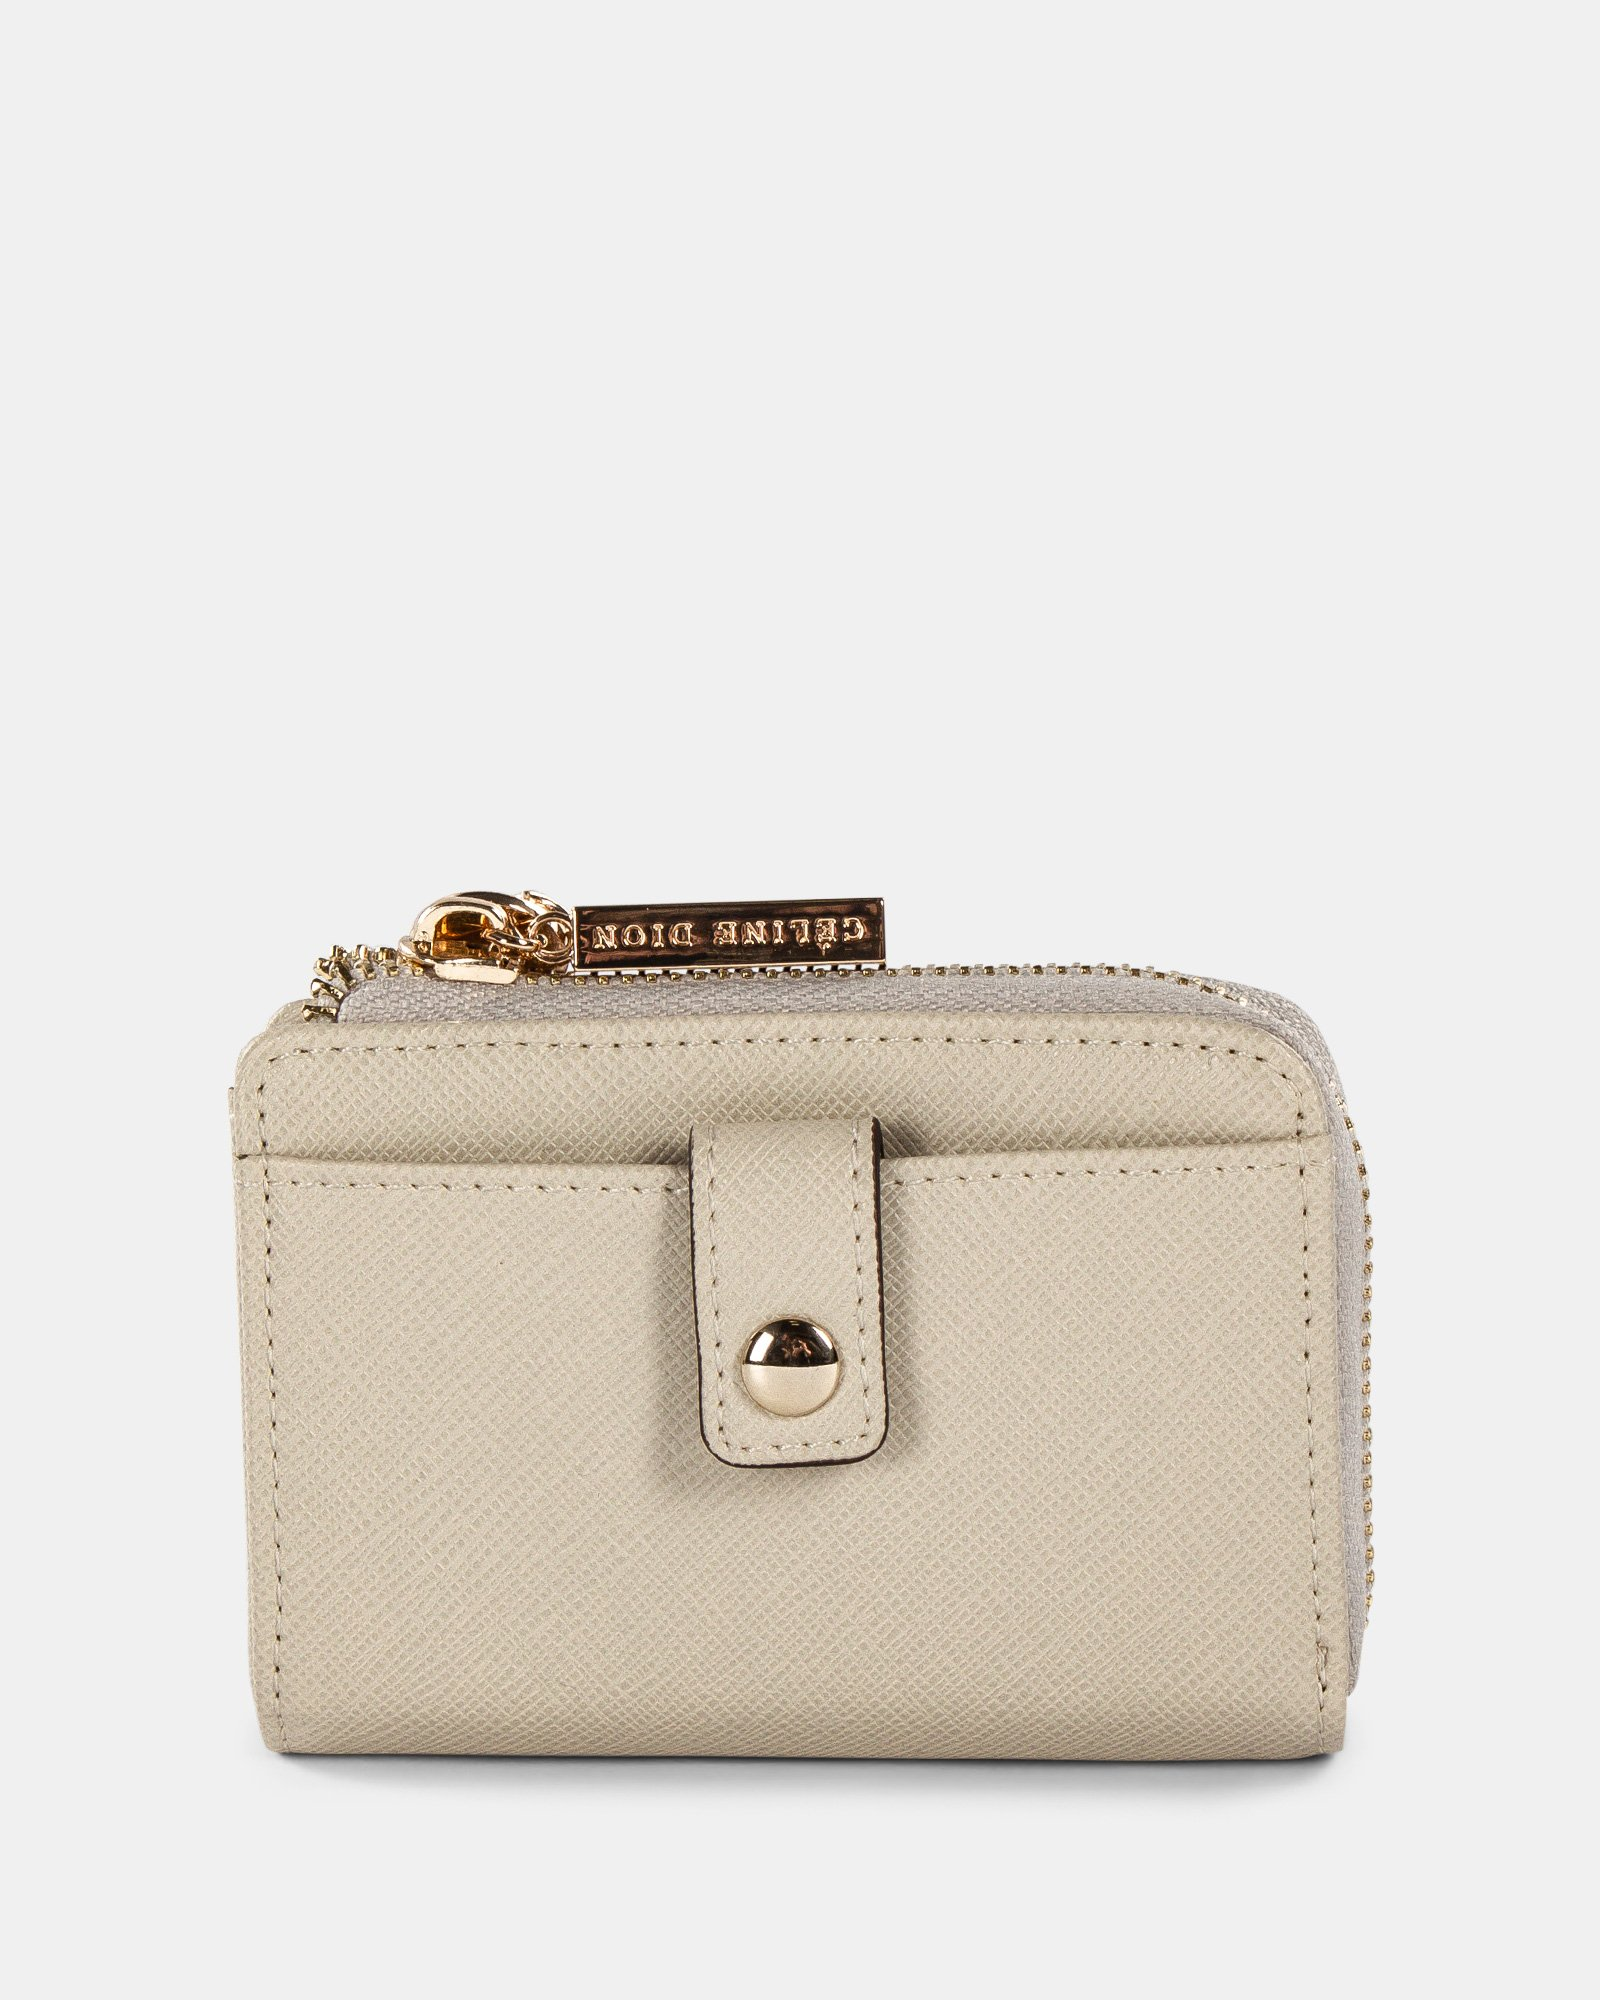 Grazioso - Small Wallet with Multiple cardholder pockets - Nude   - Céline Dion - Zoom